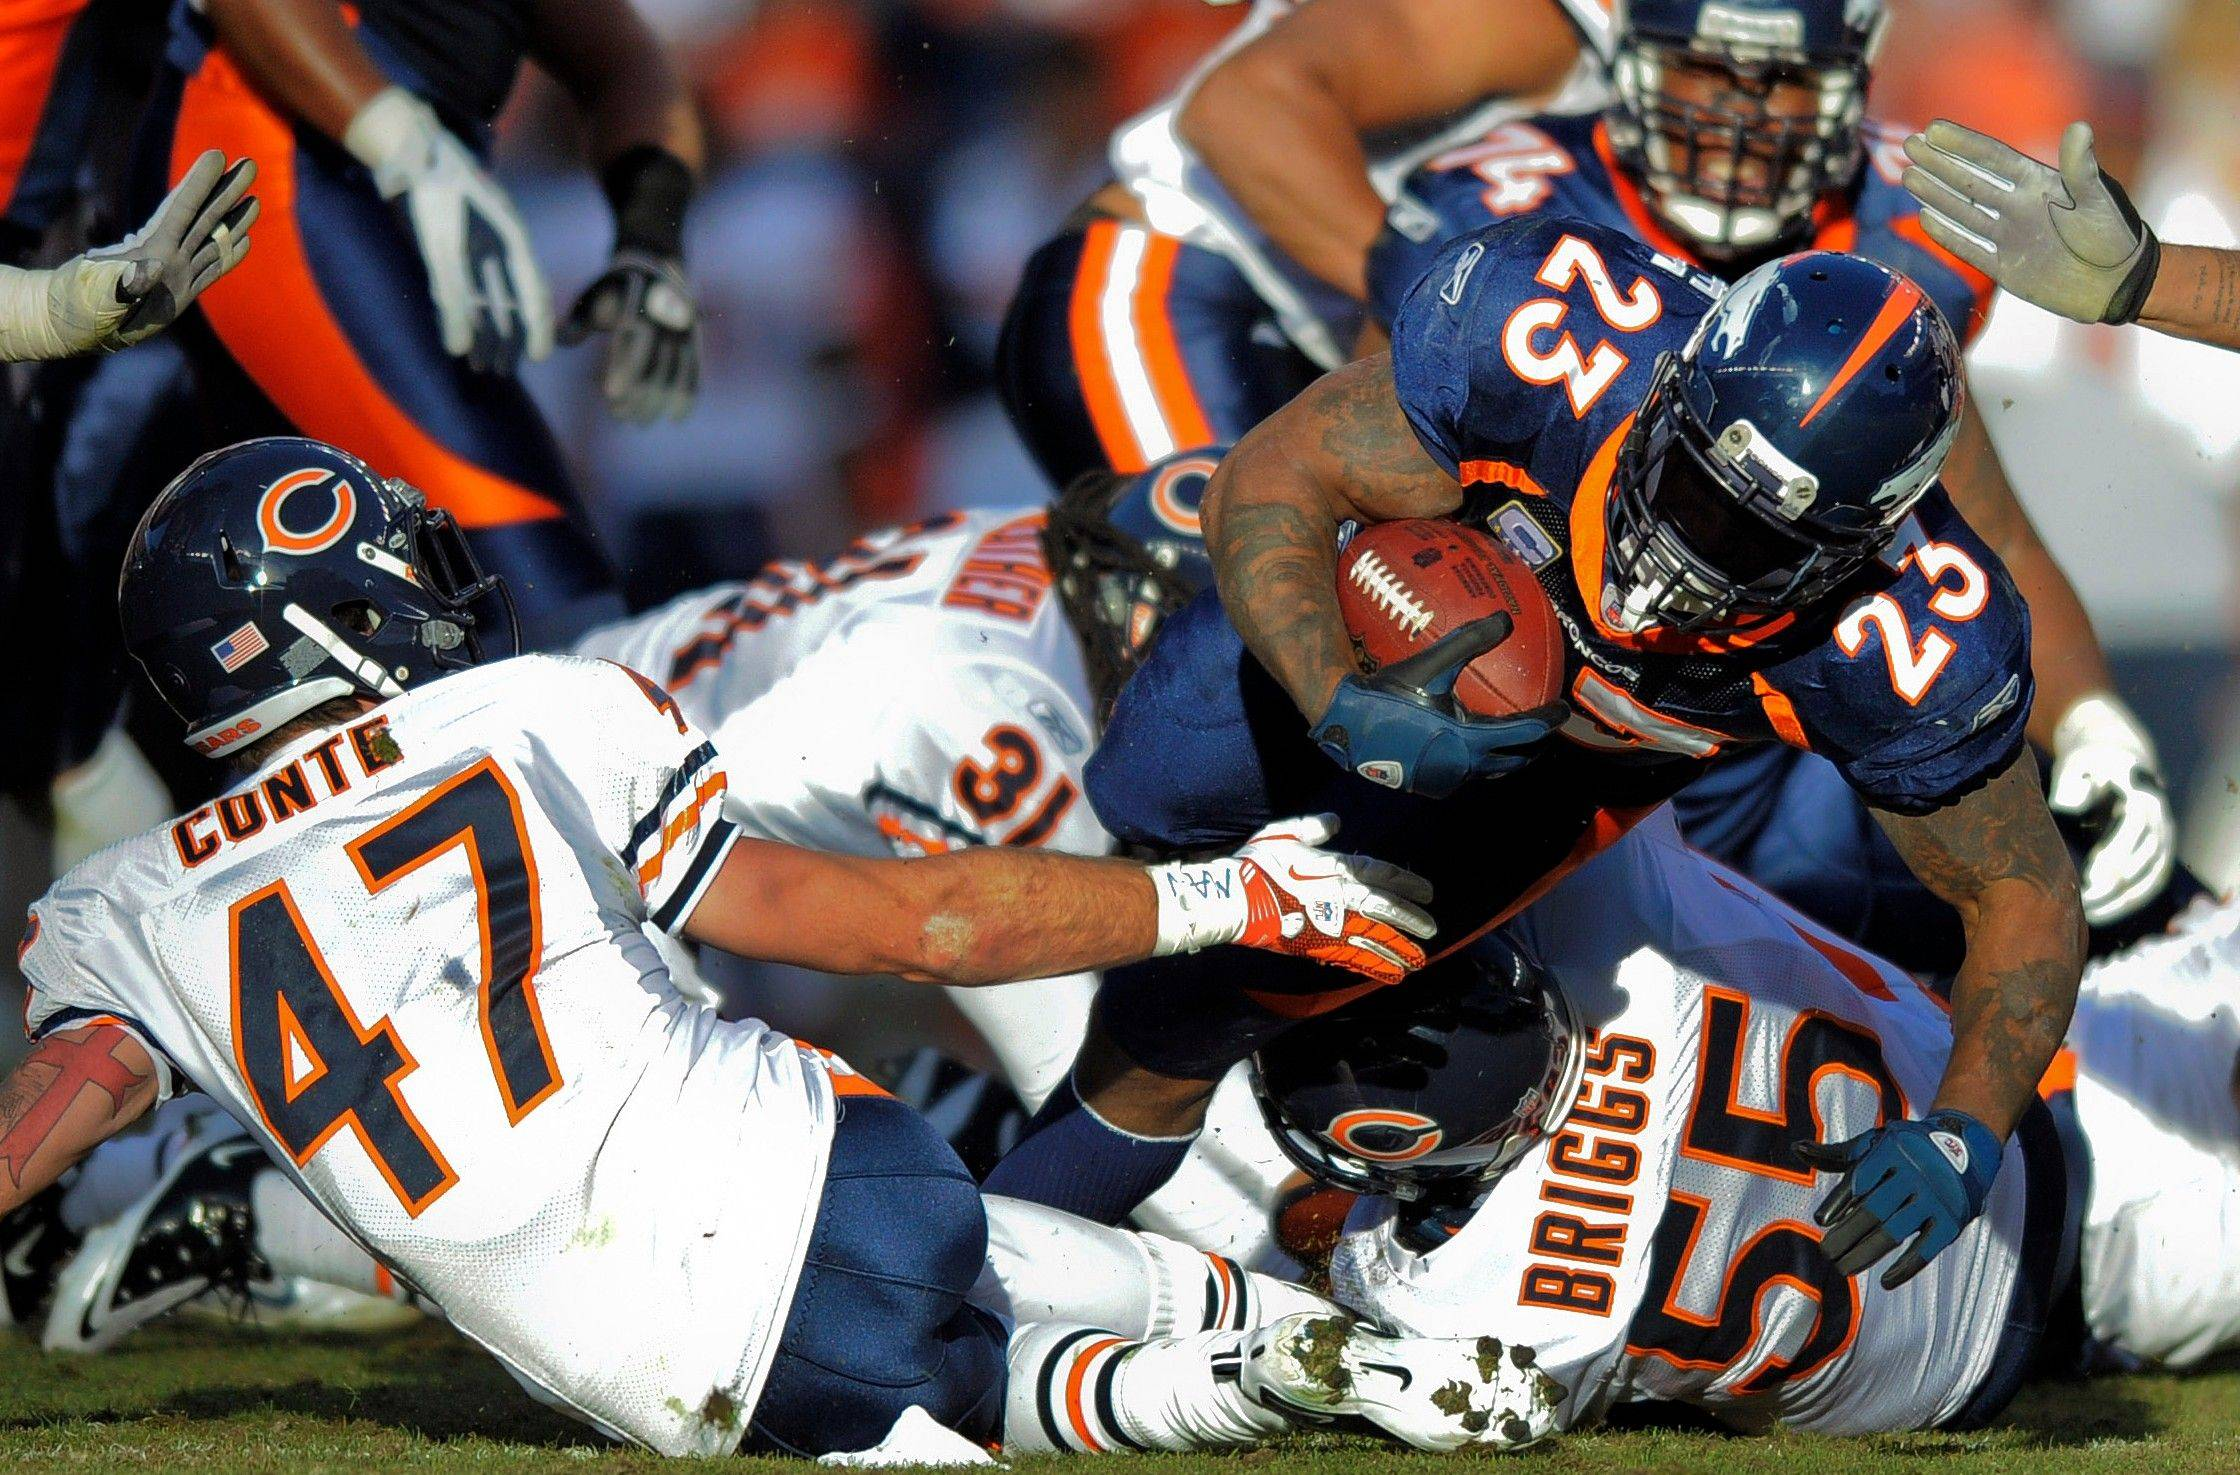 Denver Broncos running back Willis McGahee (23) is tripped up by Chicago Bears free safety Chris Conte (47) and outside linebacker Lance Briggs (55) in the second quarter.